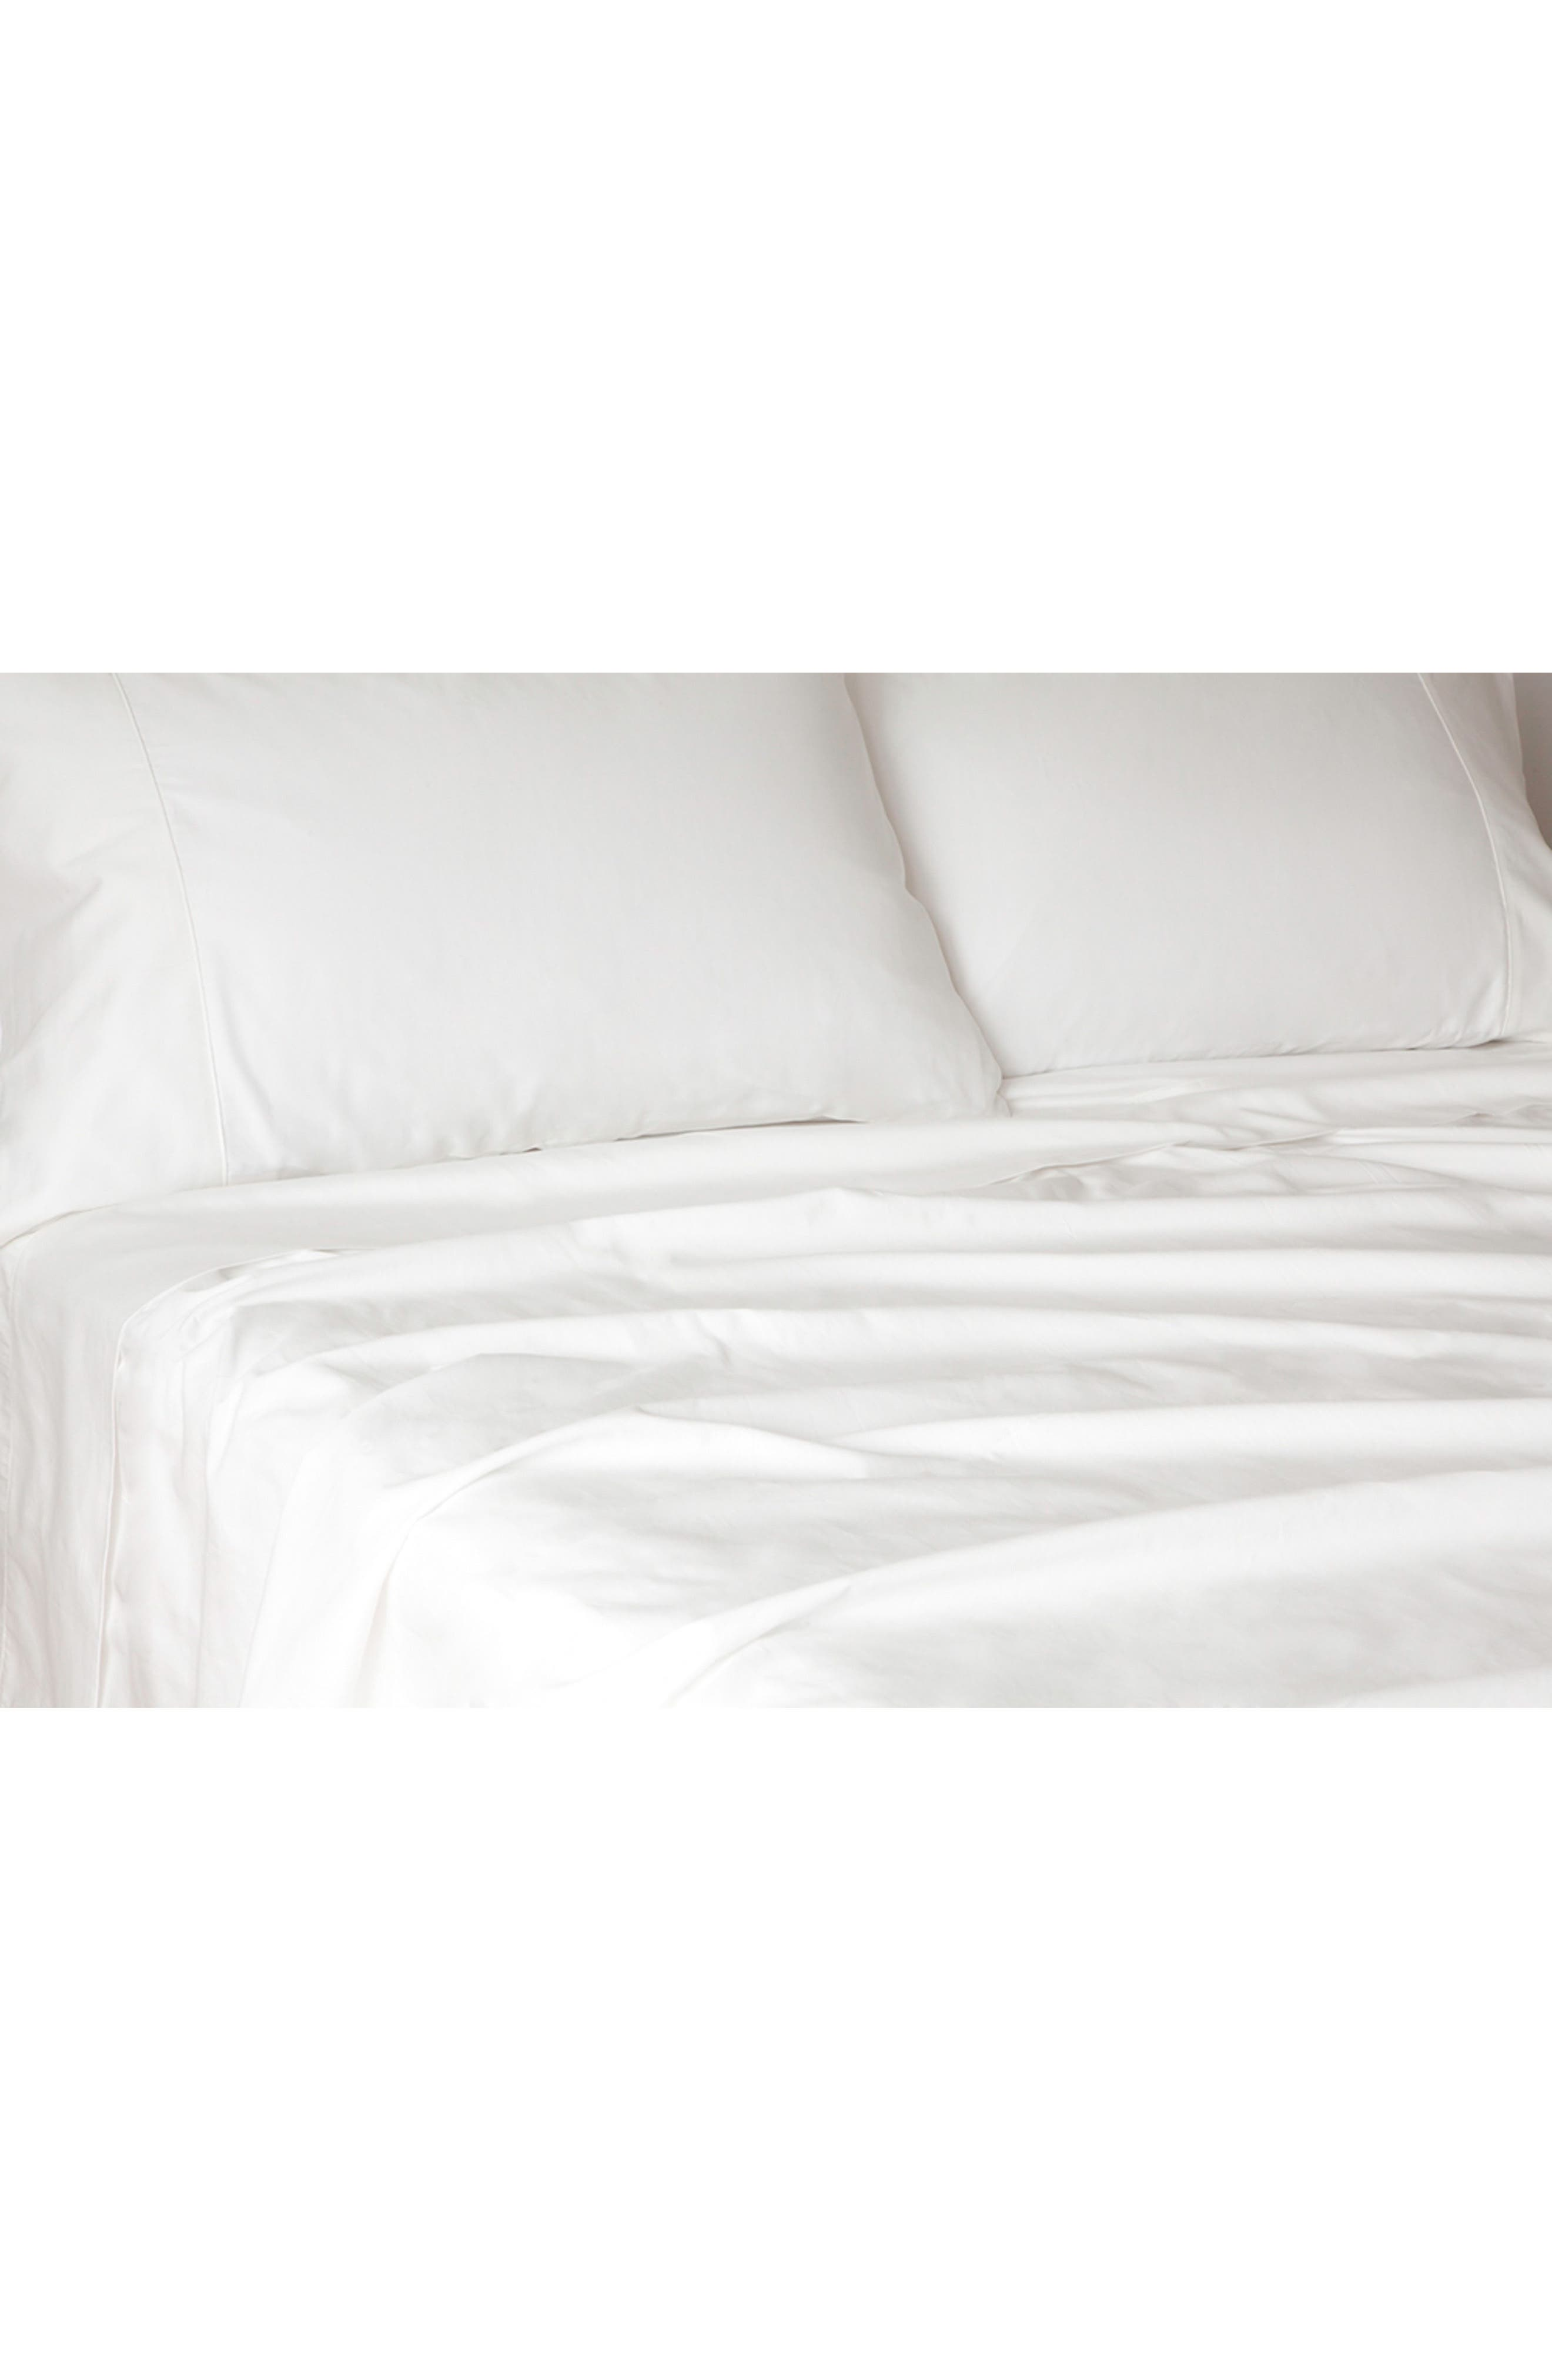 300 Thread Count Organic Cotton Sateen Sheet Set,                         Main,                         color, White